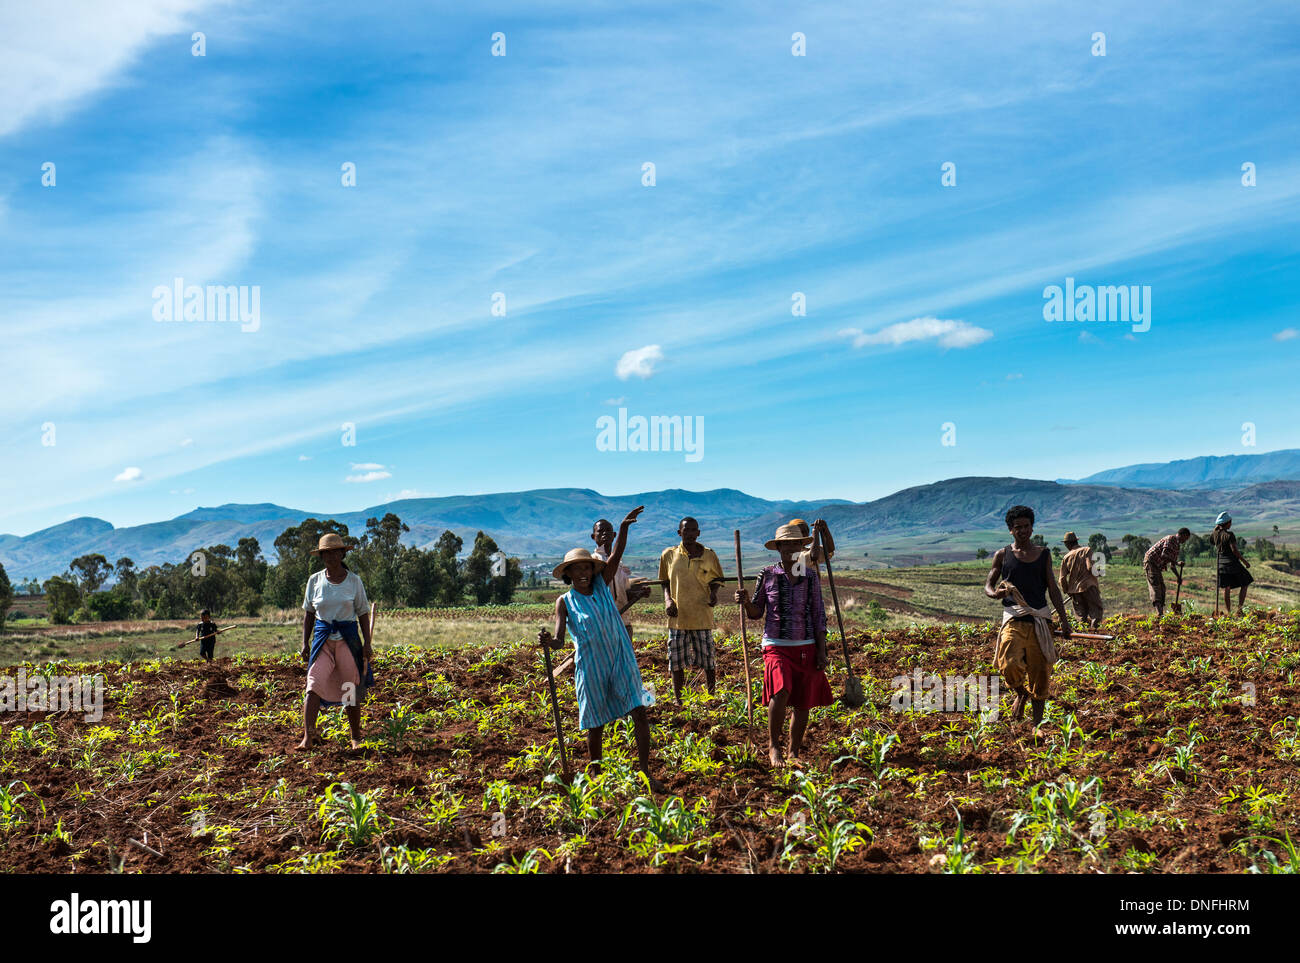 Malagasy farmers working in the fields. - Stock Image